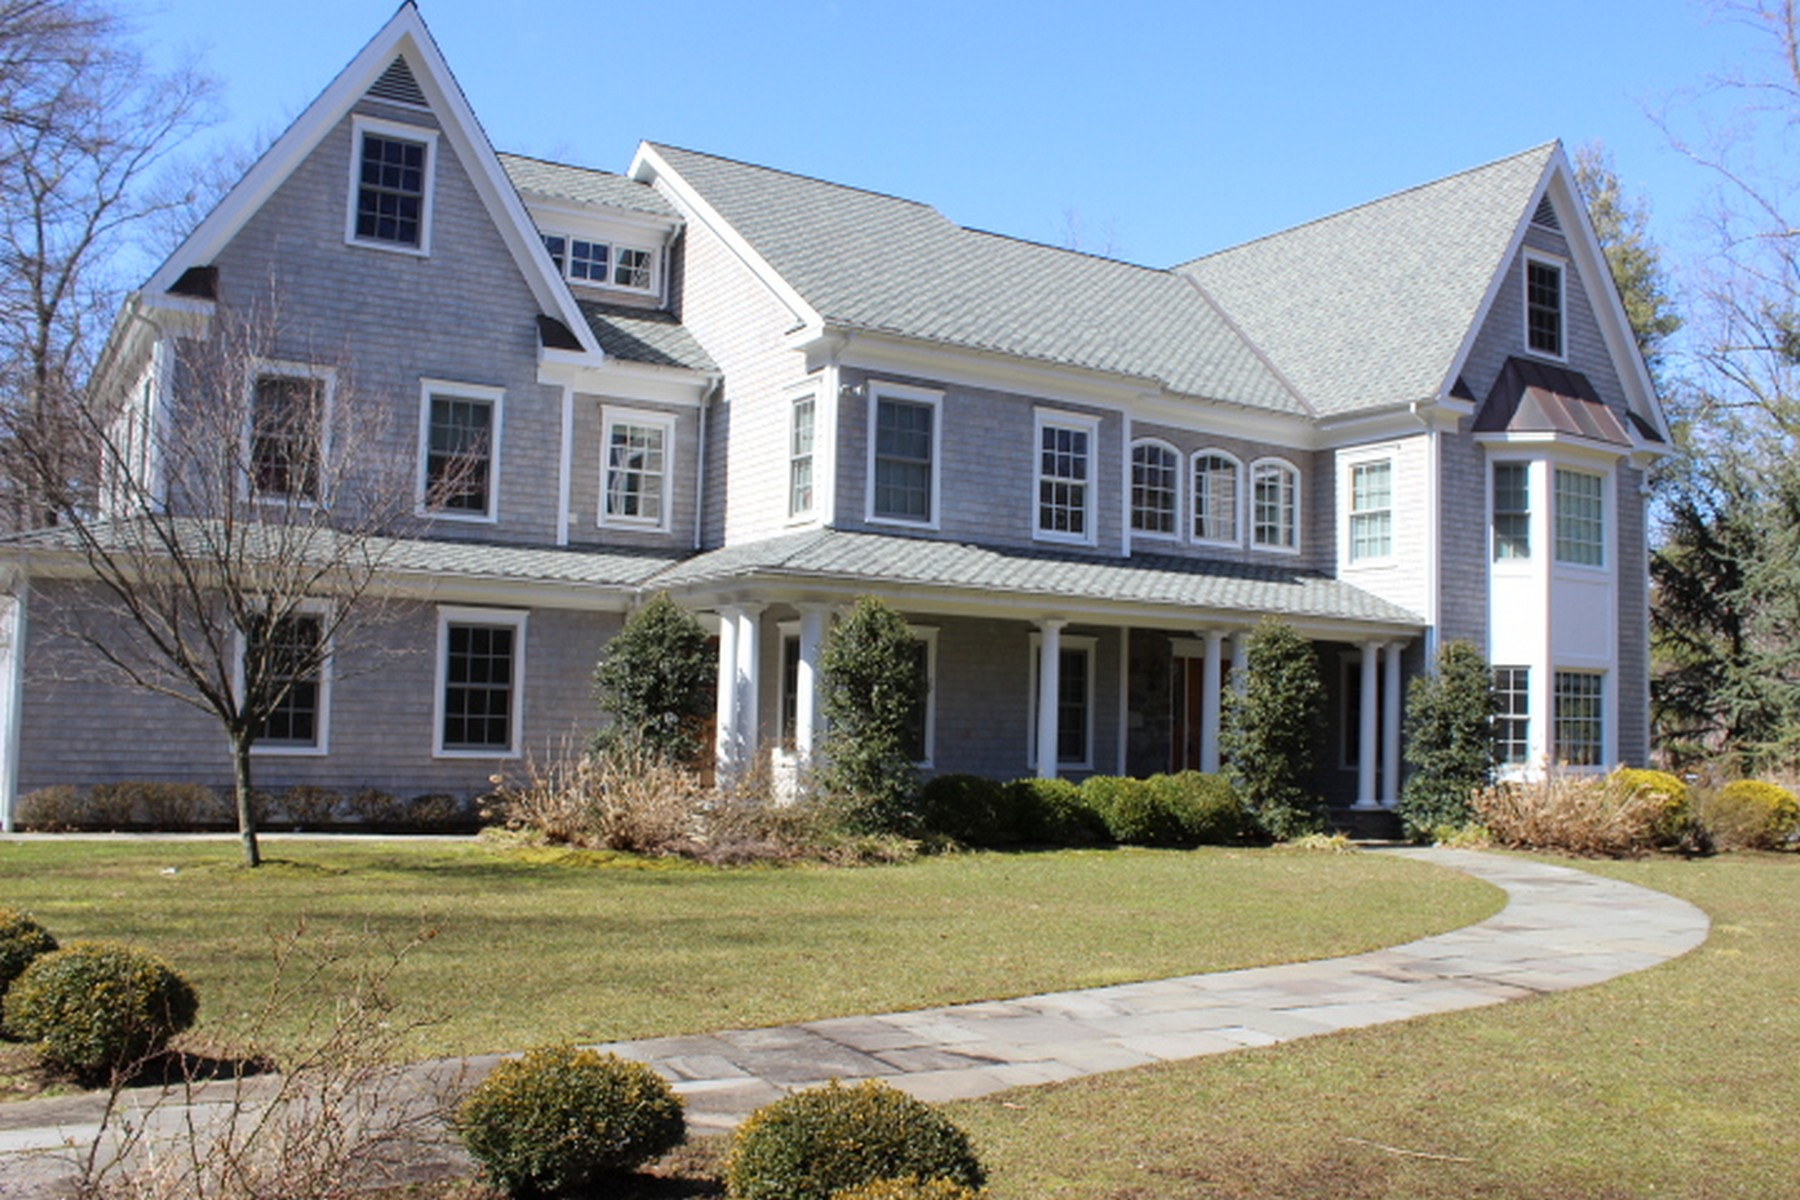 Single Family Home for Sale at 287 Bayberry Lane Westport, Connecticut, 06880 United States